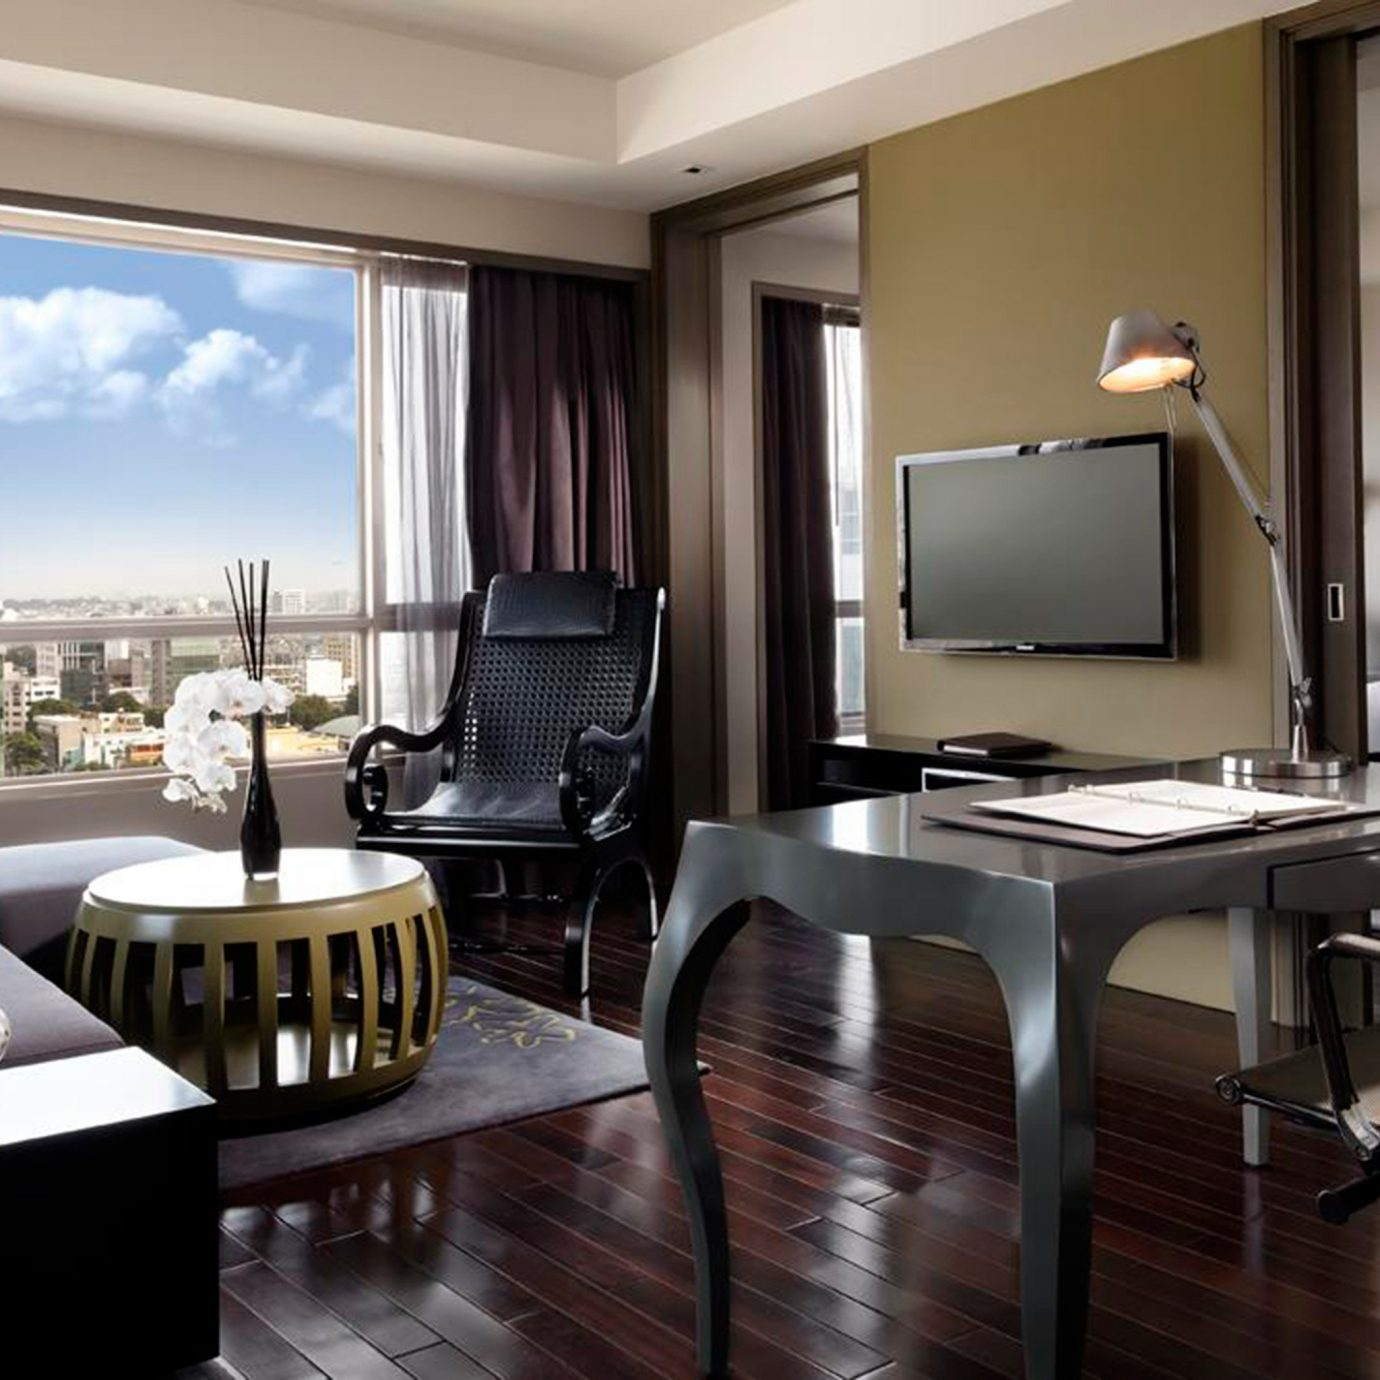 Balcony Bedroom City Entertainment Resort Scenic views property chair condominium living room Suite home dining table